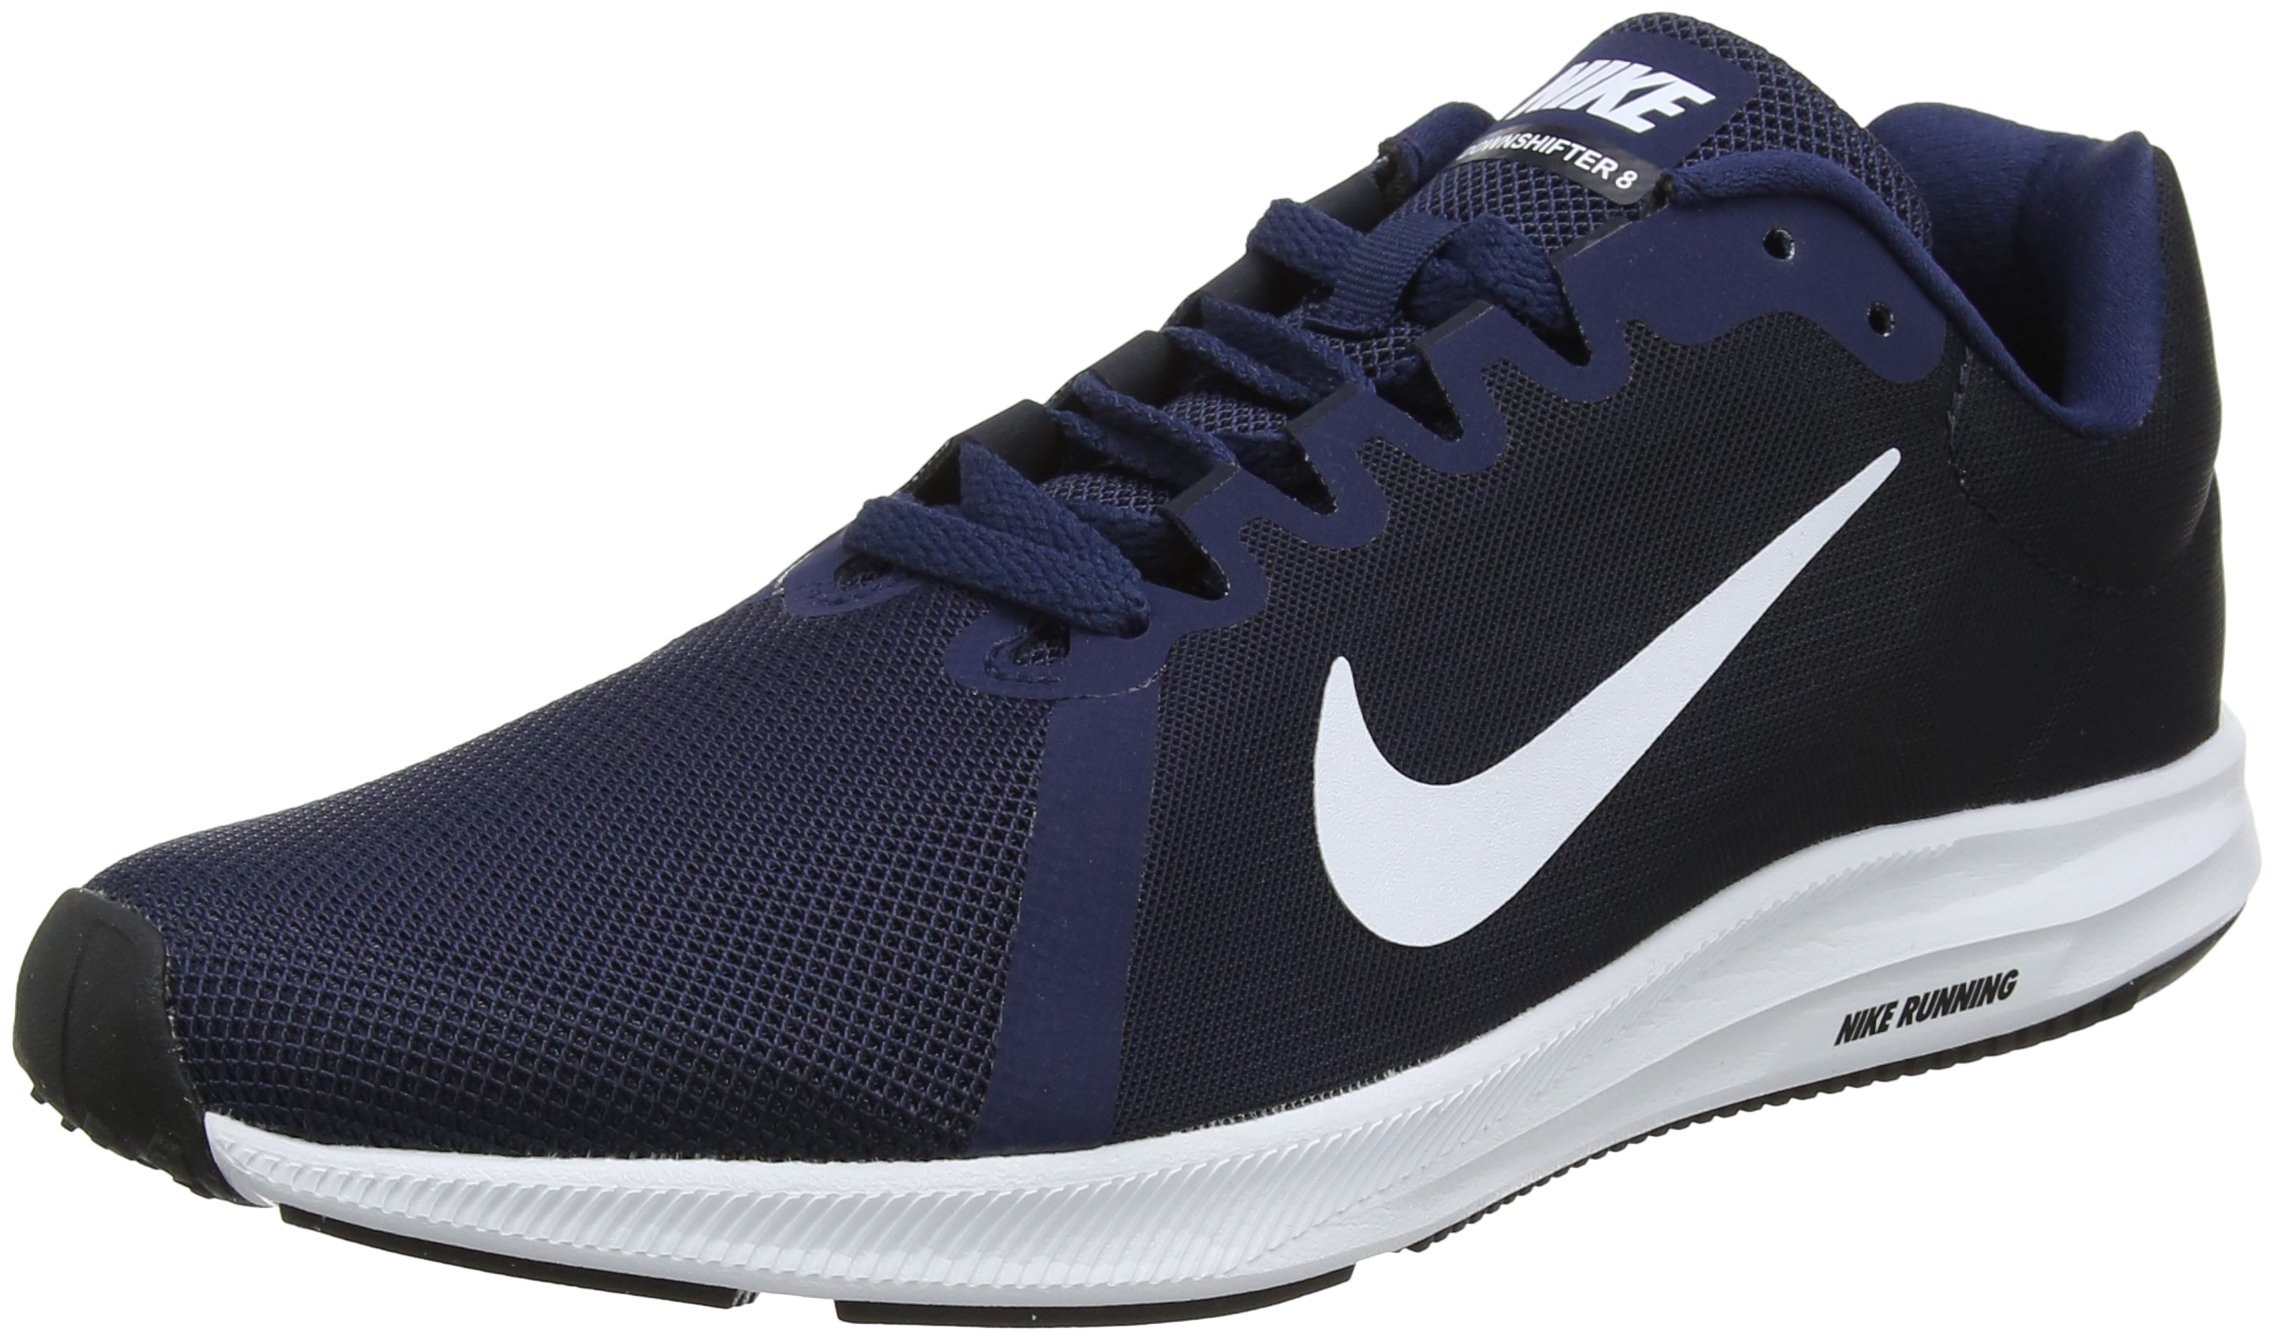 NIKE - Downshifter 8-908984400 - Color: Navy Blue-White-Black - Size: 7.0❗️Ships directly from Nike❗️